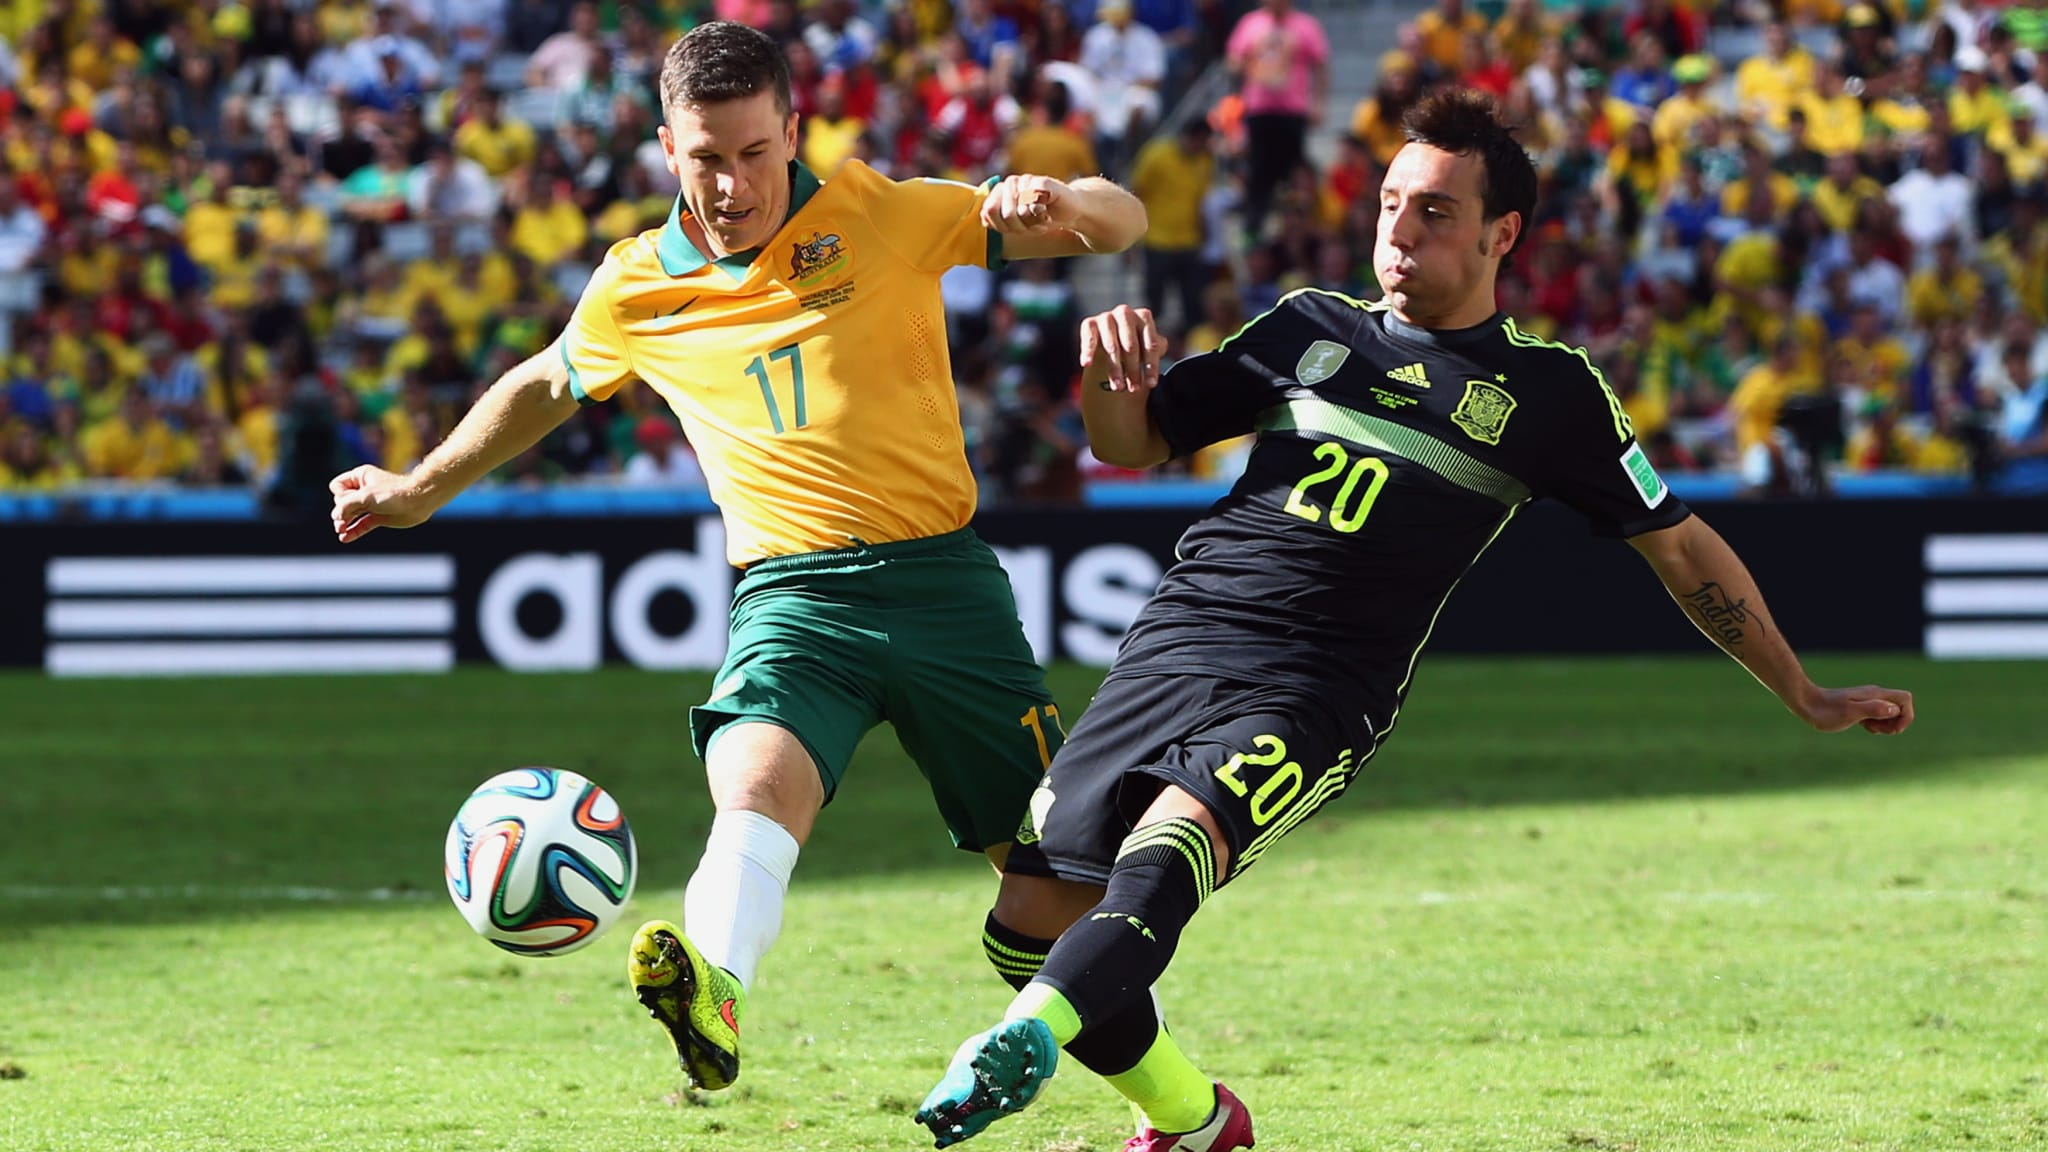 Matt McKay (L) of Australia competes with Santi Cazorla of Spain during the 2014 FIFA World Cup Brazil Group B match between Australia and Spain at Arena da Baixada on June 23, 2014 in Curitiba, Brazil.